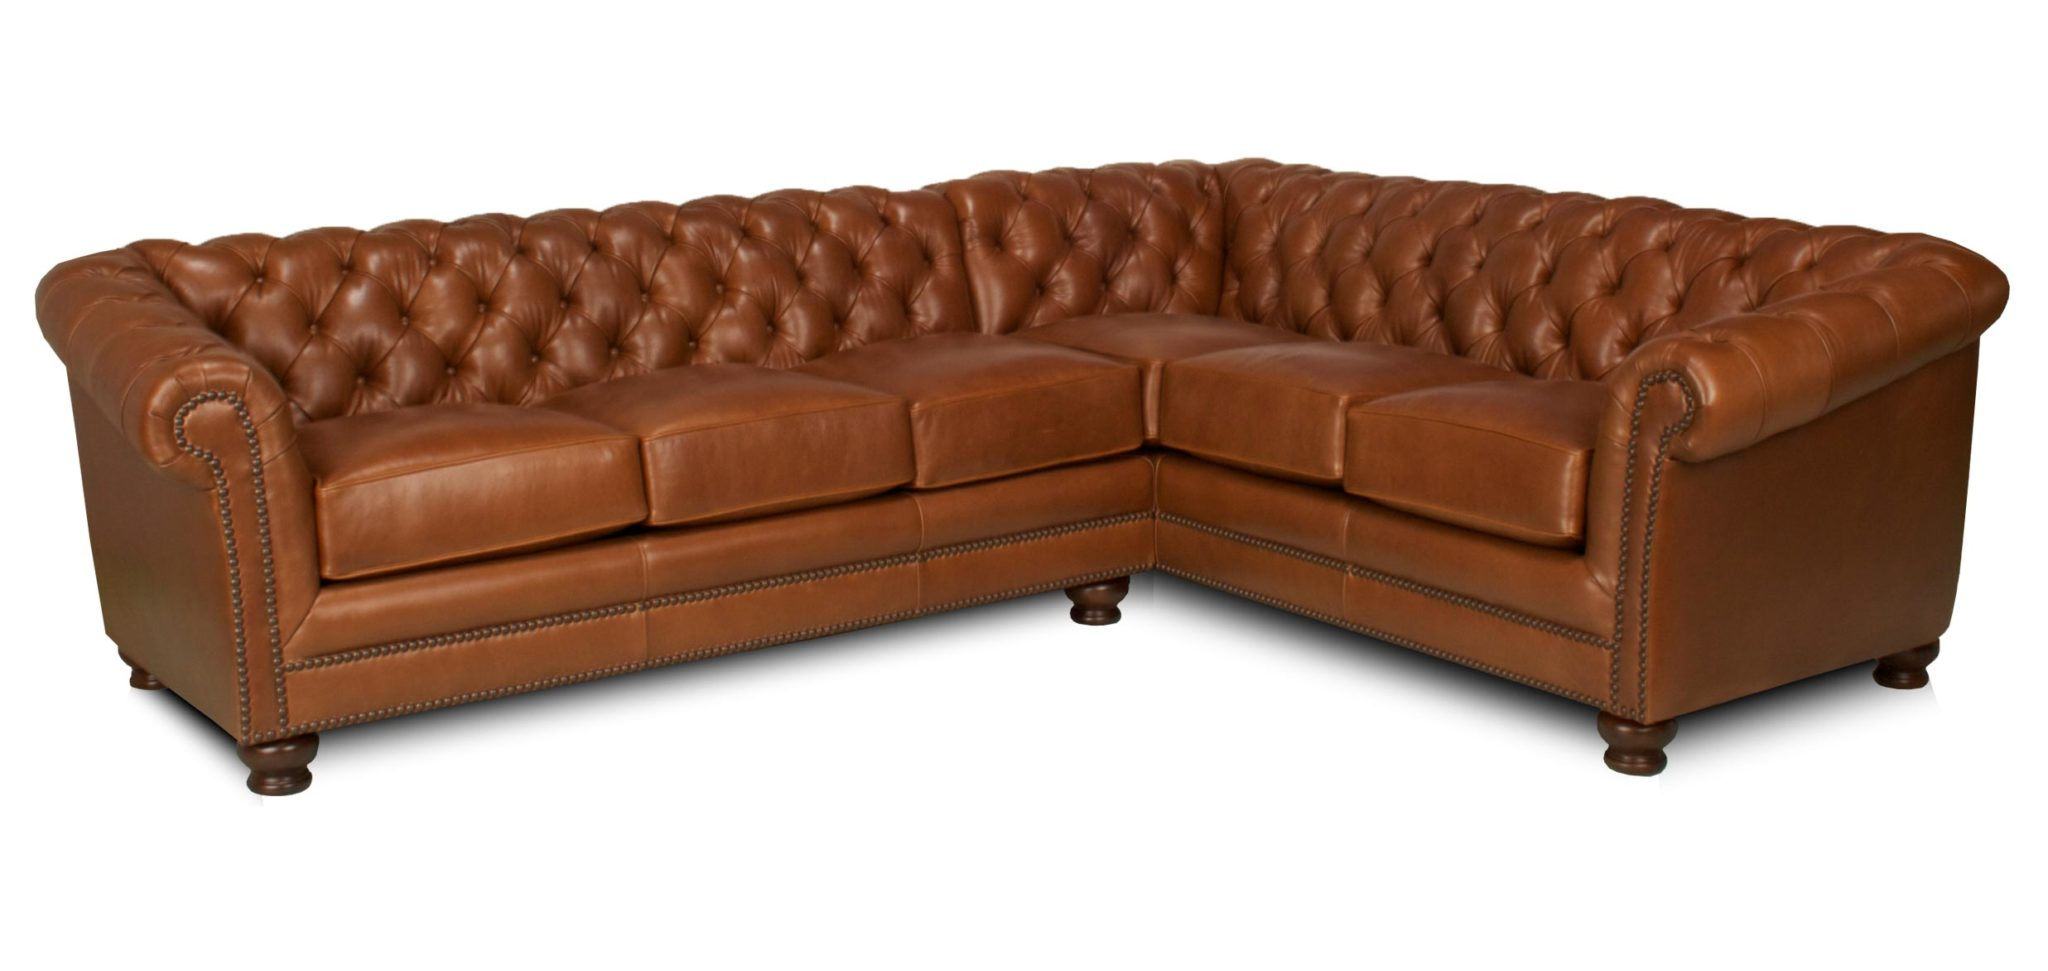 Chesterfield leather sectional Leather chesterfield loveseat